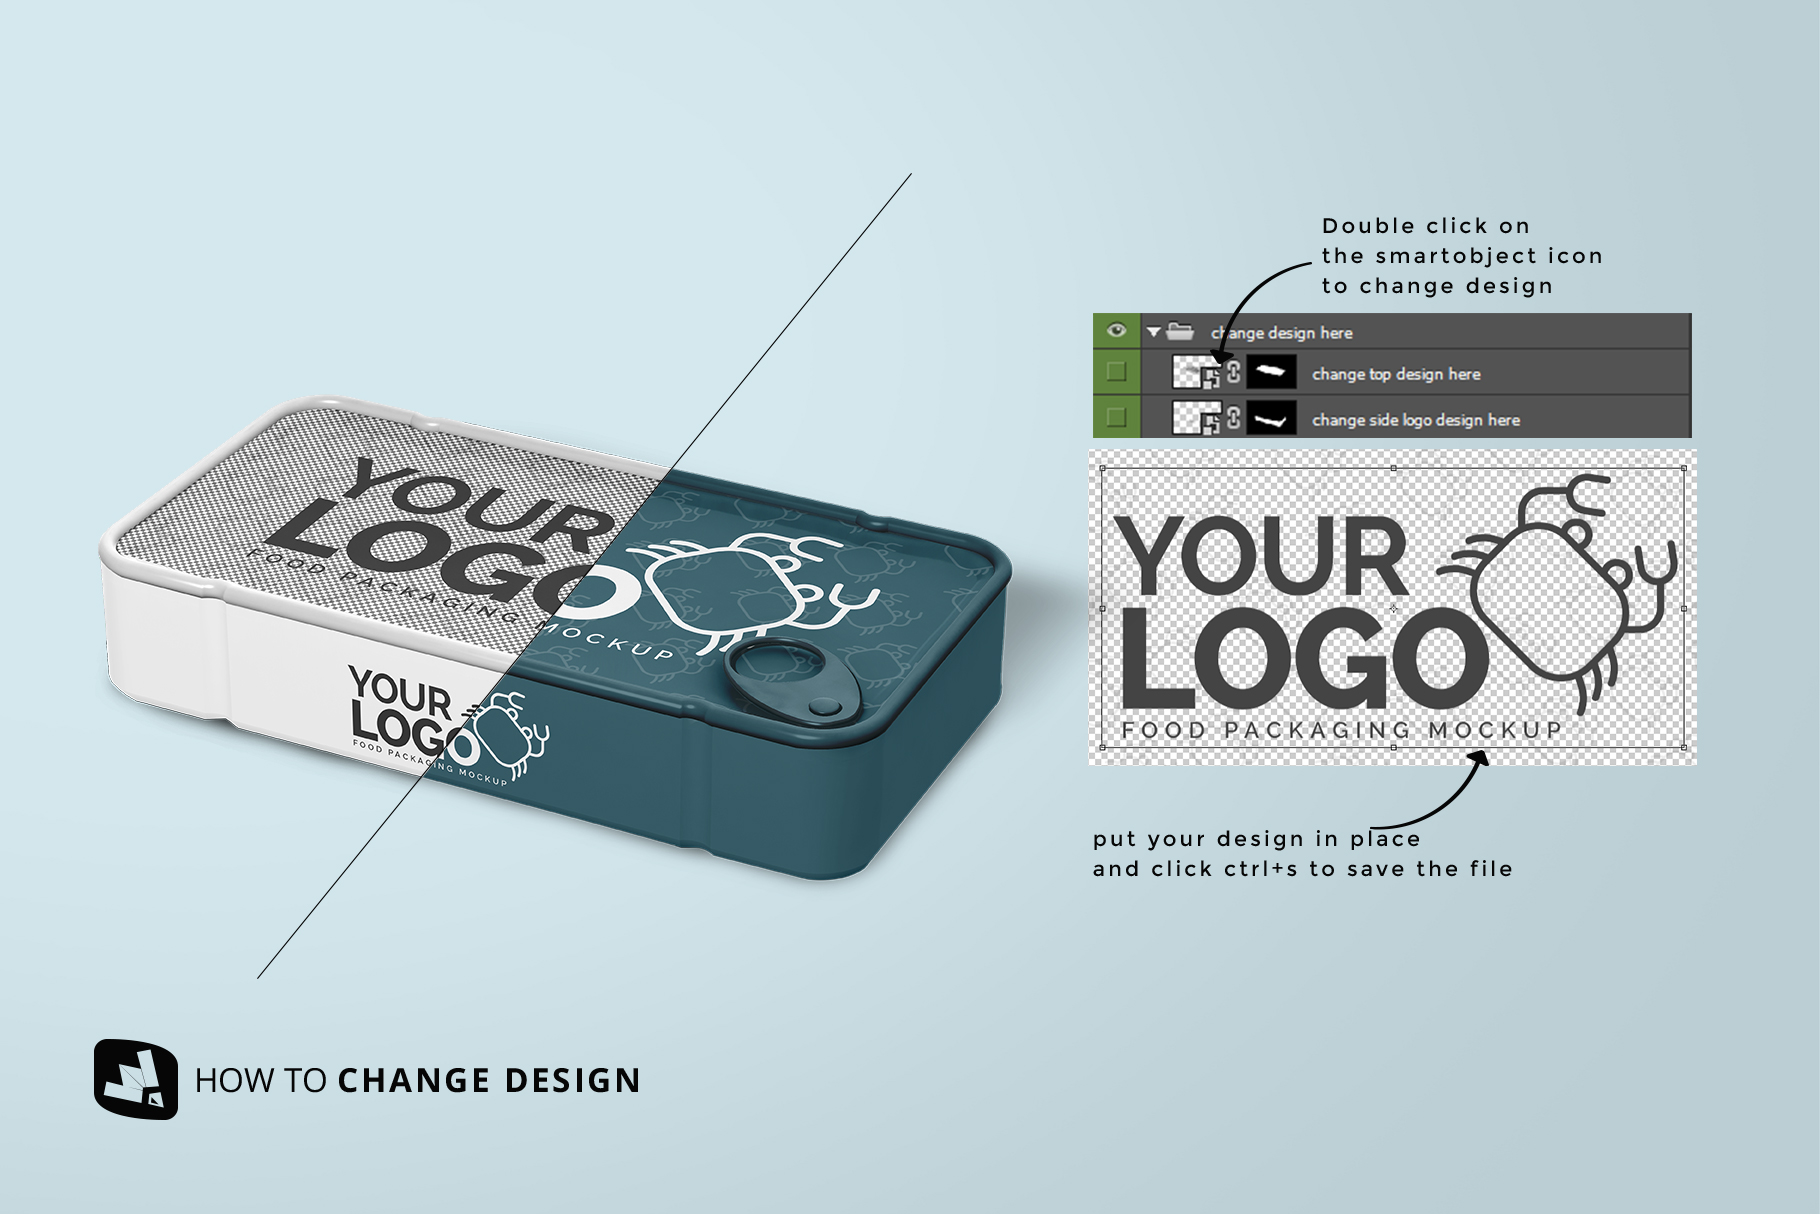 how to change design of the canned food packaging mockup